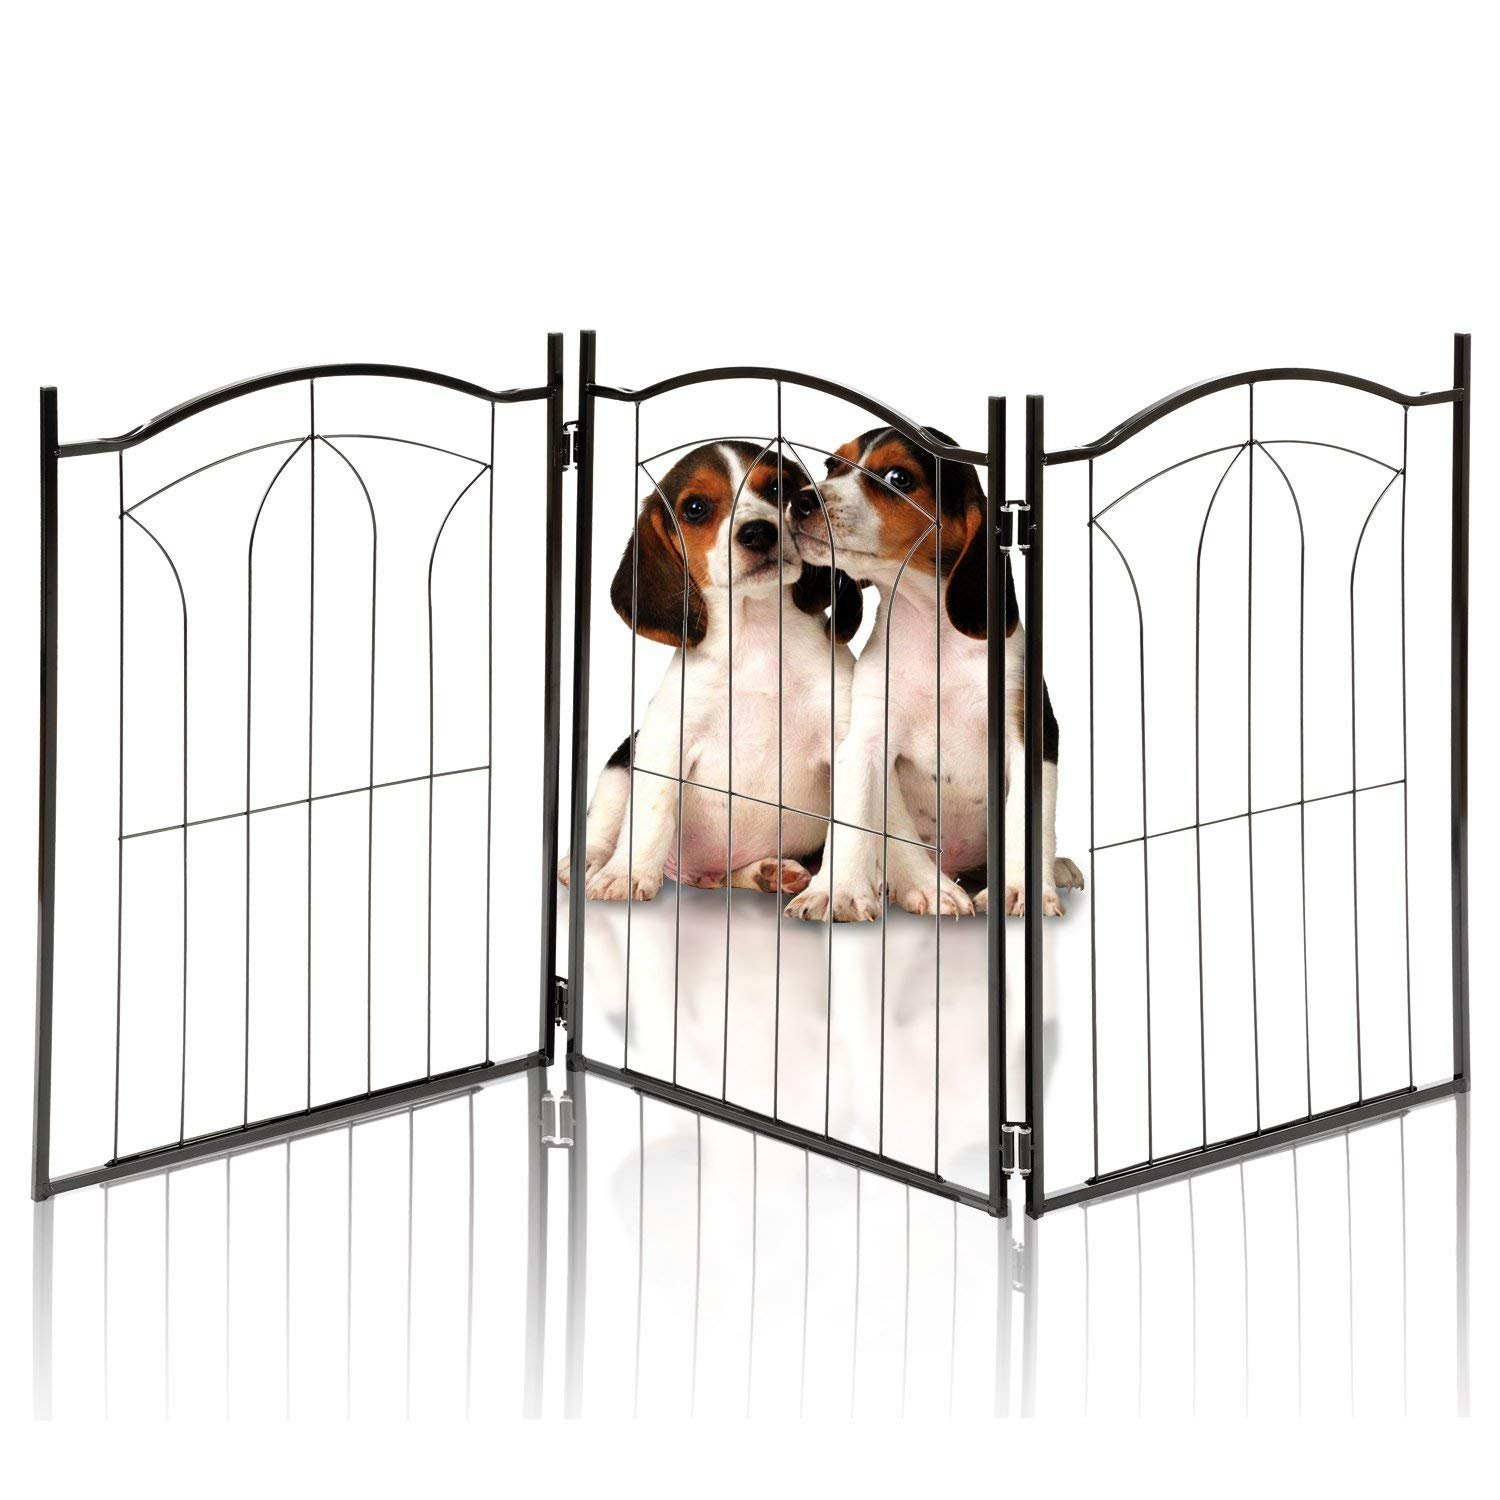 Hoovy Freestanding Metal Pet Gate: Foldable & Extendable Dog & Puppy Gate for Home & Office Use | Keeps Pets Safe | No Assembly Required | Portable & Durable Design (Metal Arch Design)